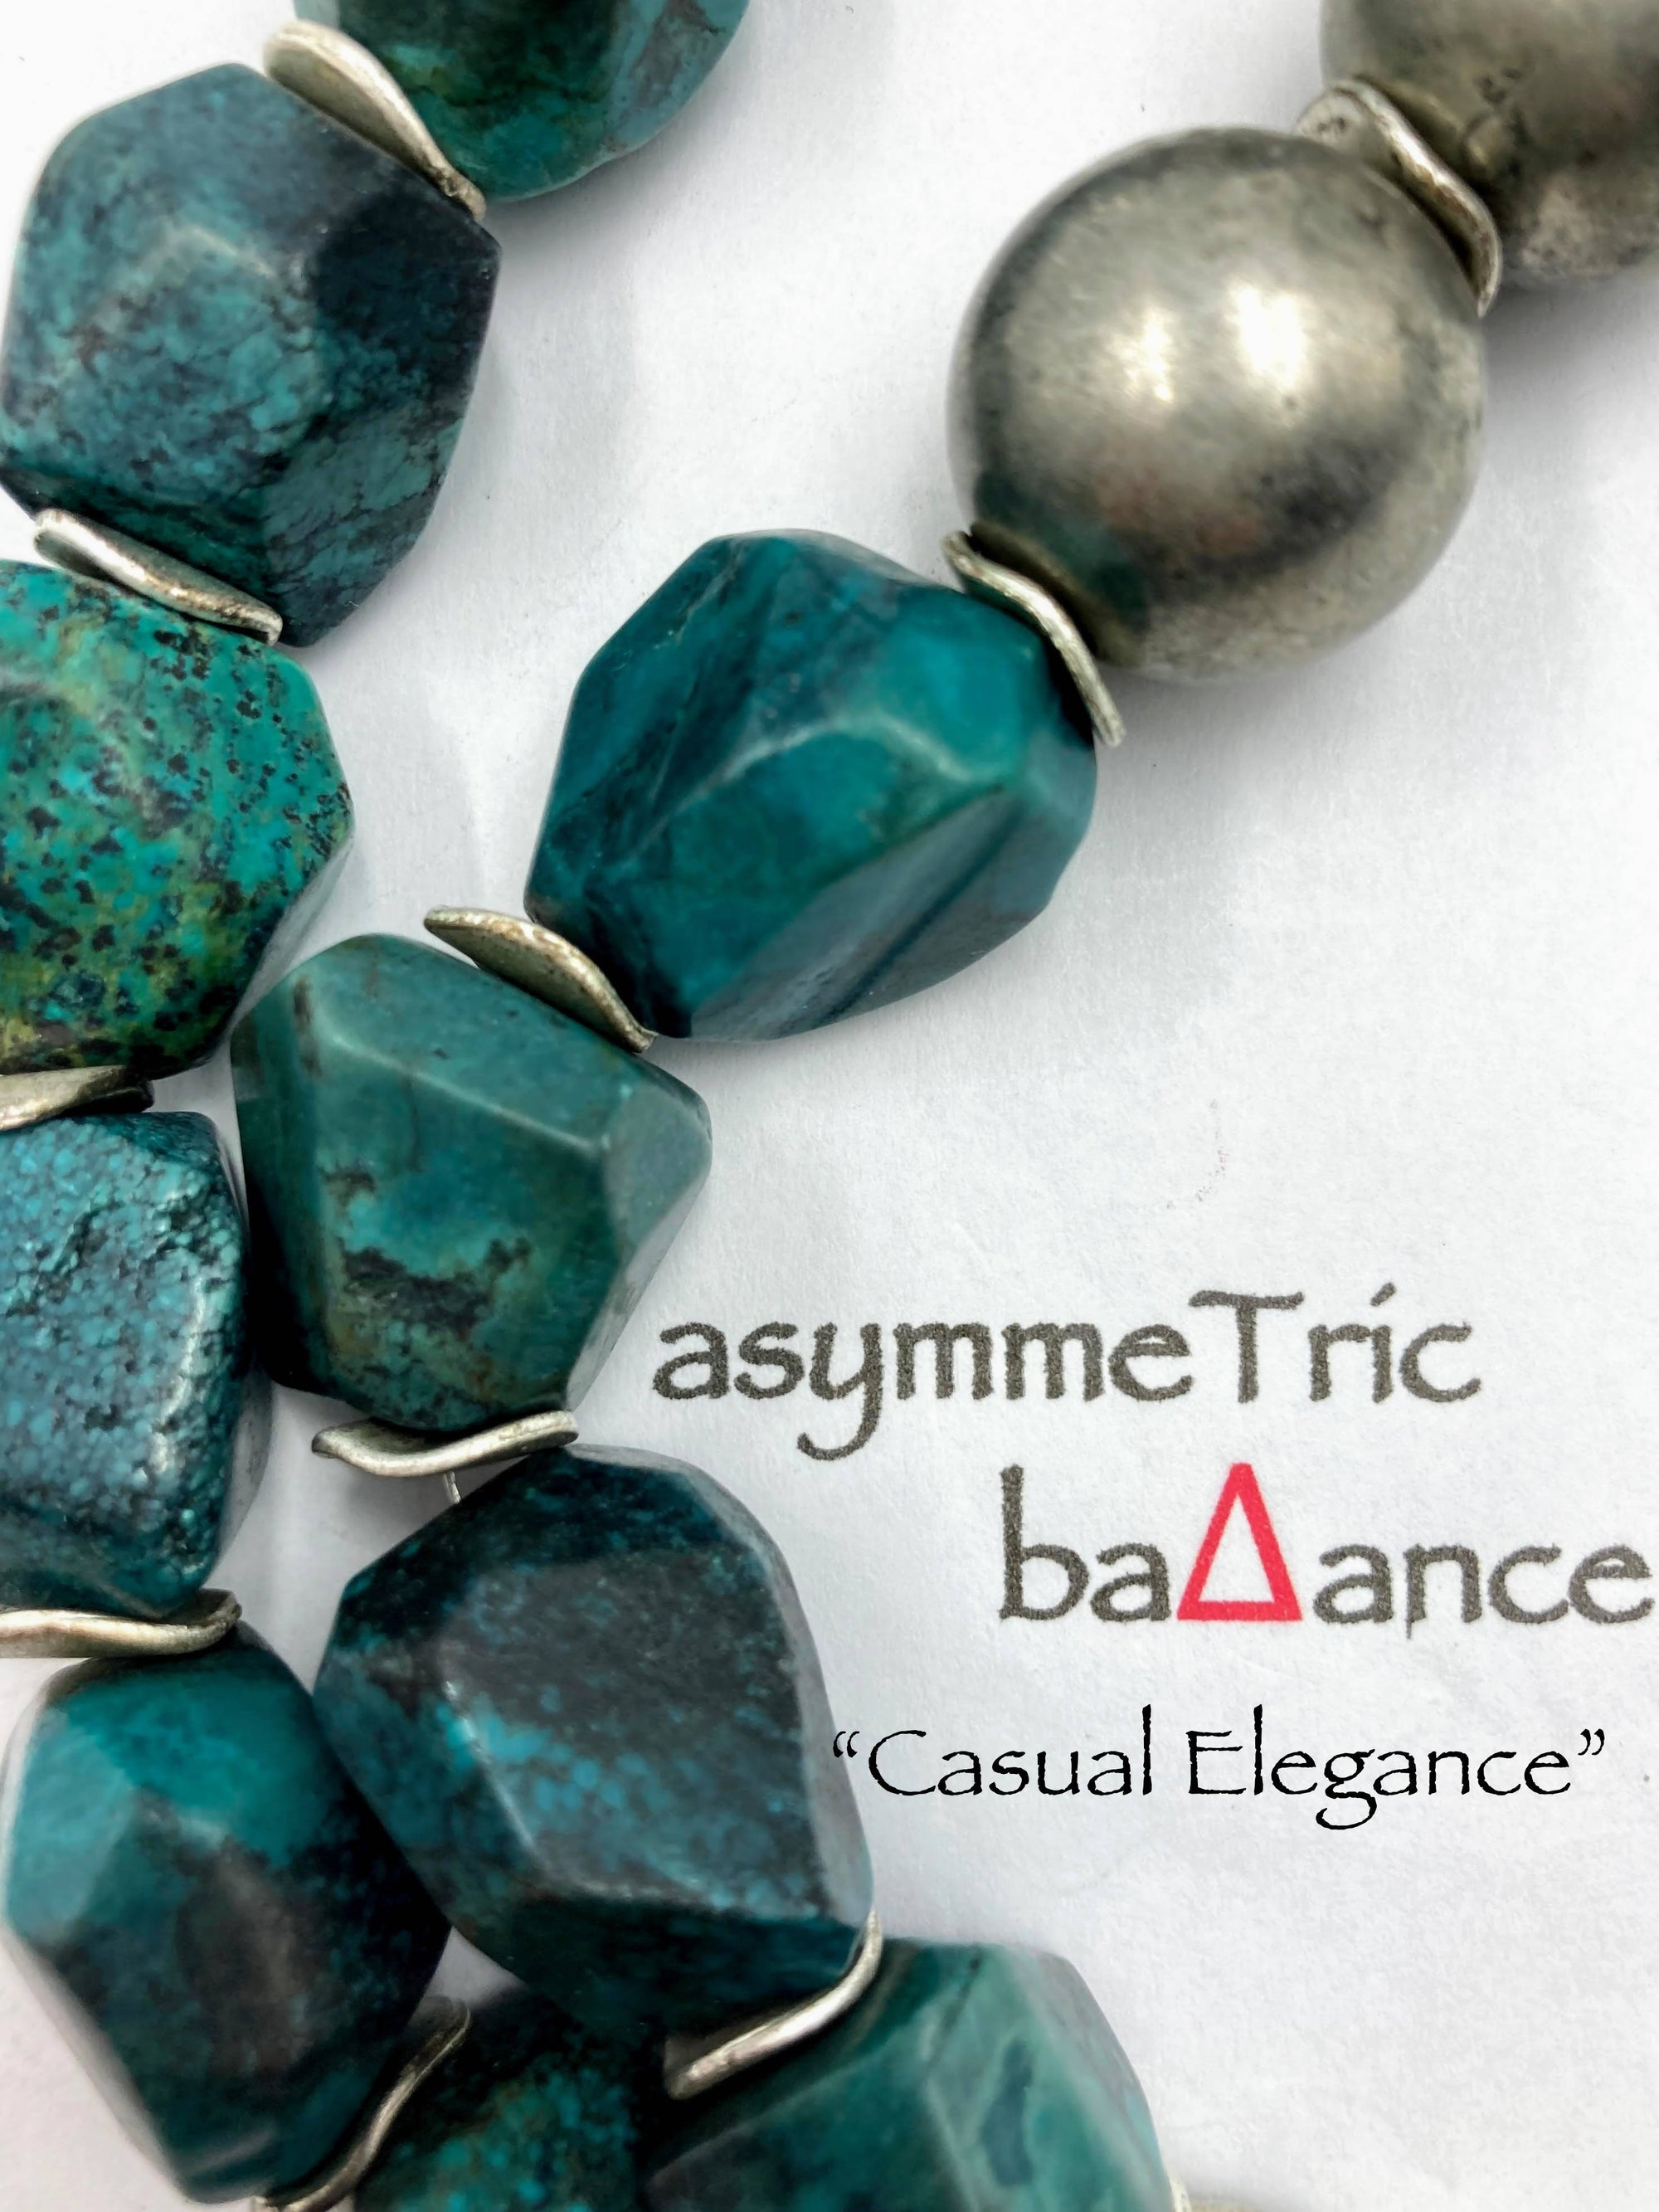 Turquoise Chunks + Old Silver = casual elegance: a bold asymmetric semi-precious gemstone necklace